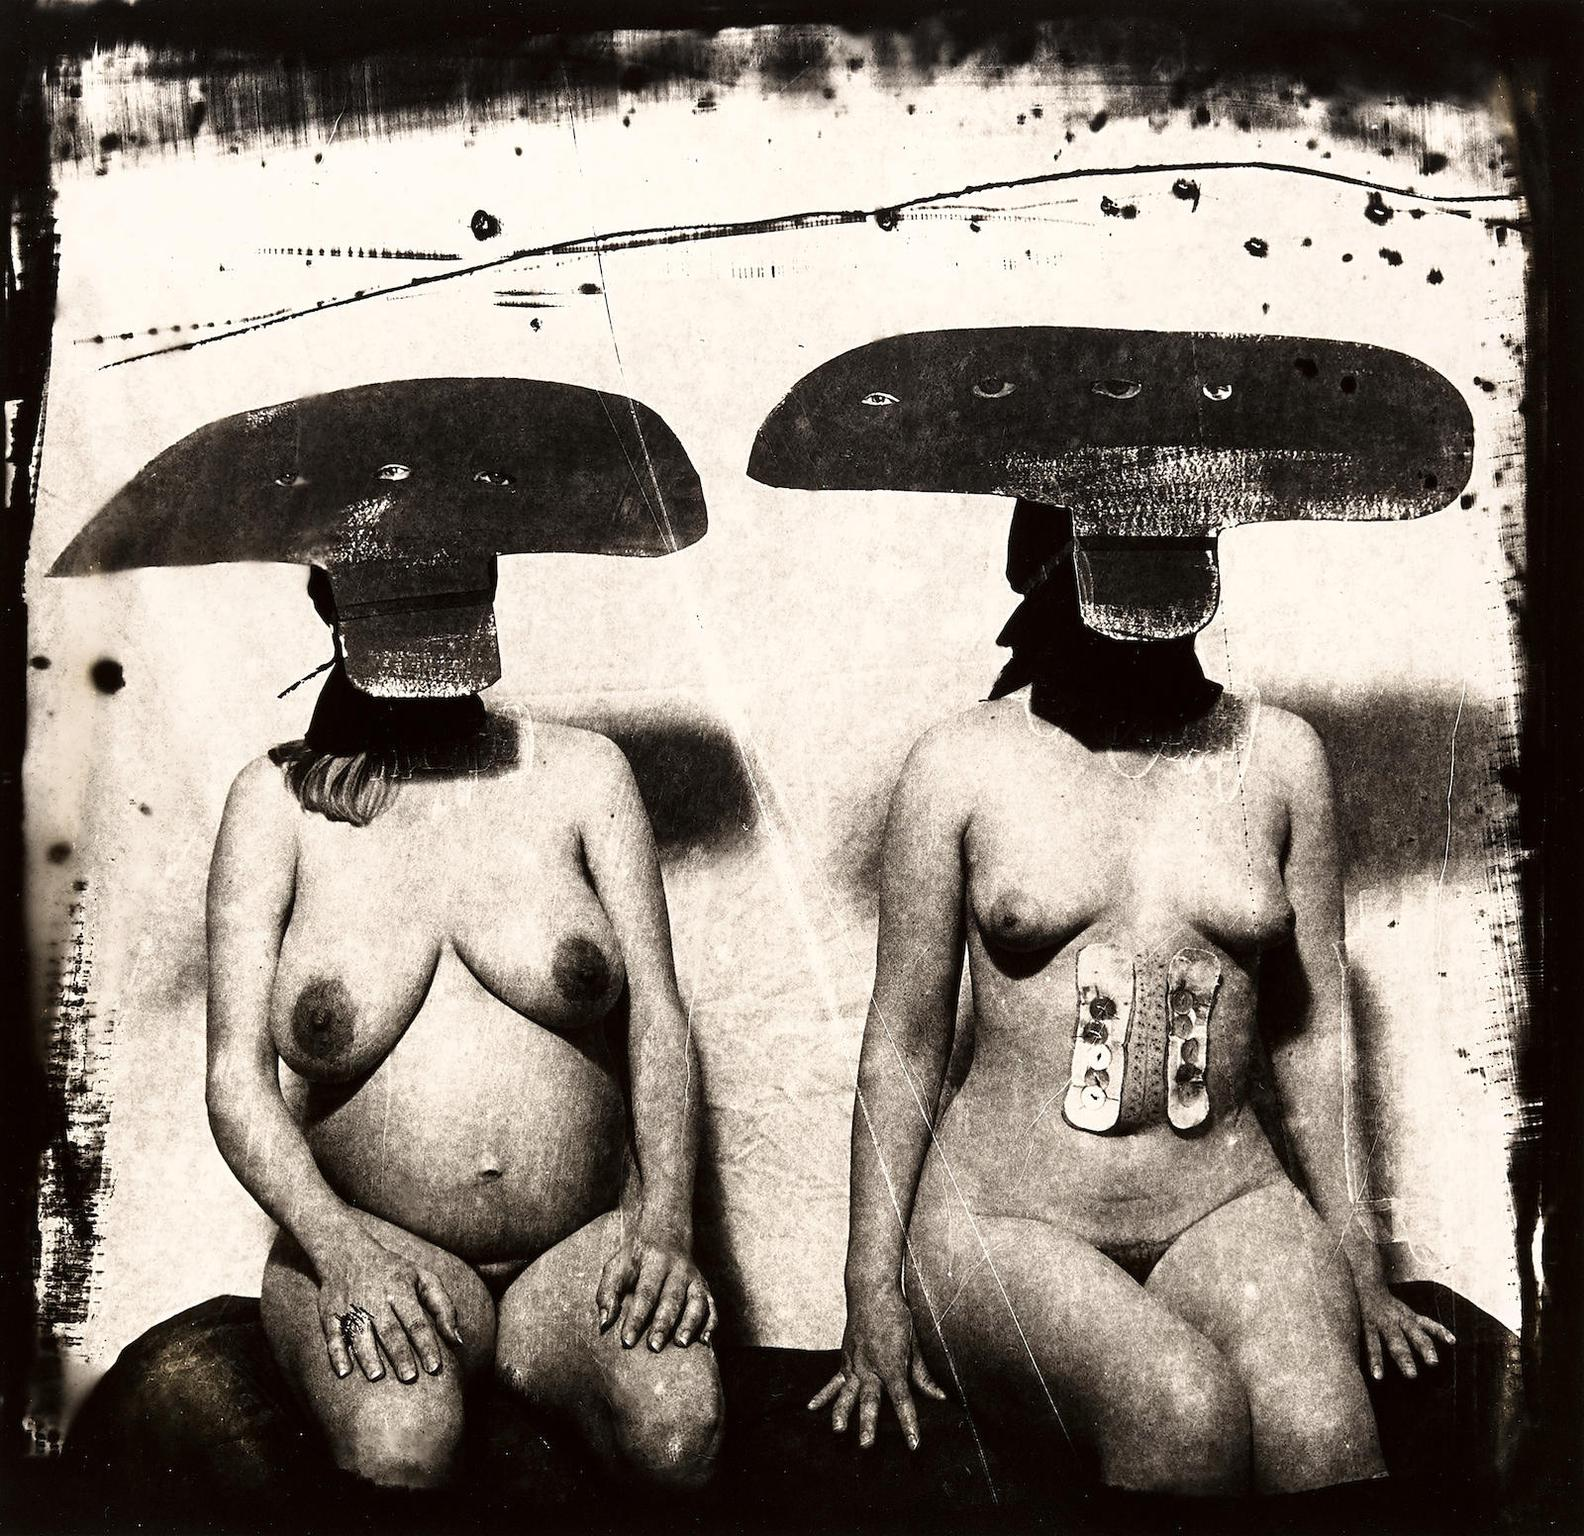 Joel-Peter Witkin-I.D. Photograph From Purgatory: Two Women With Stomach Irritations, New Mexico-1982